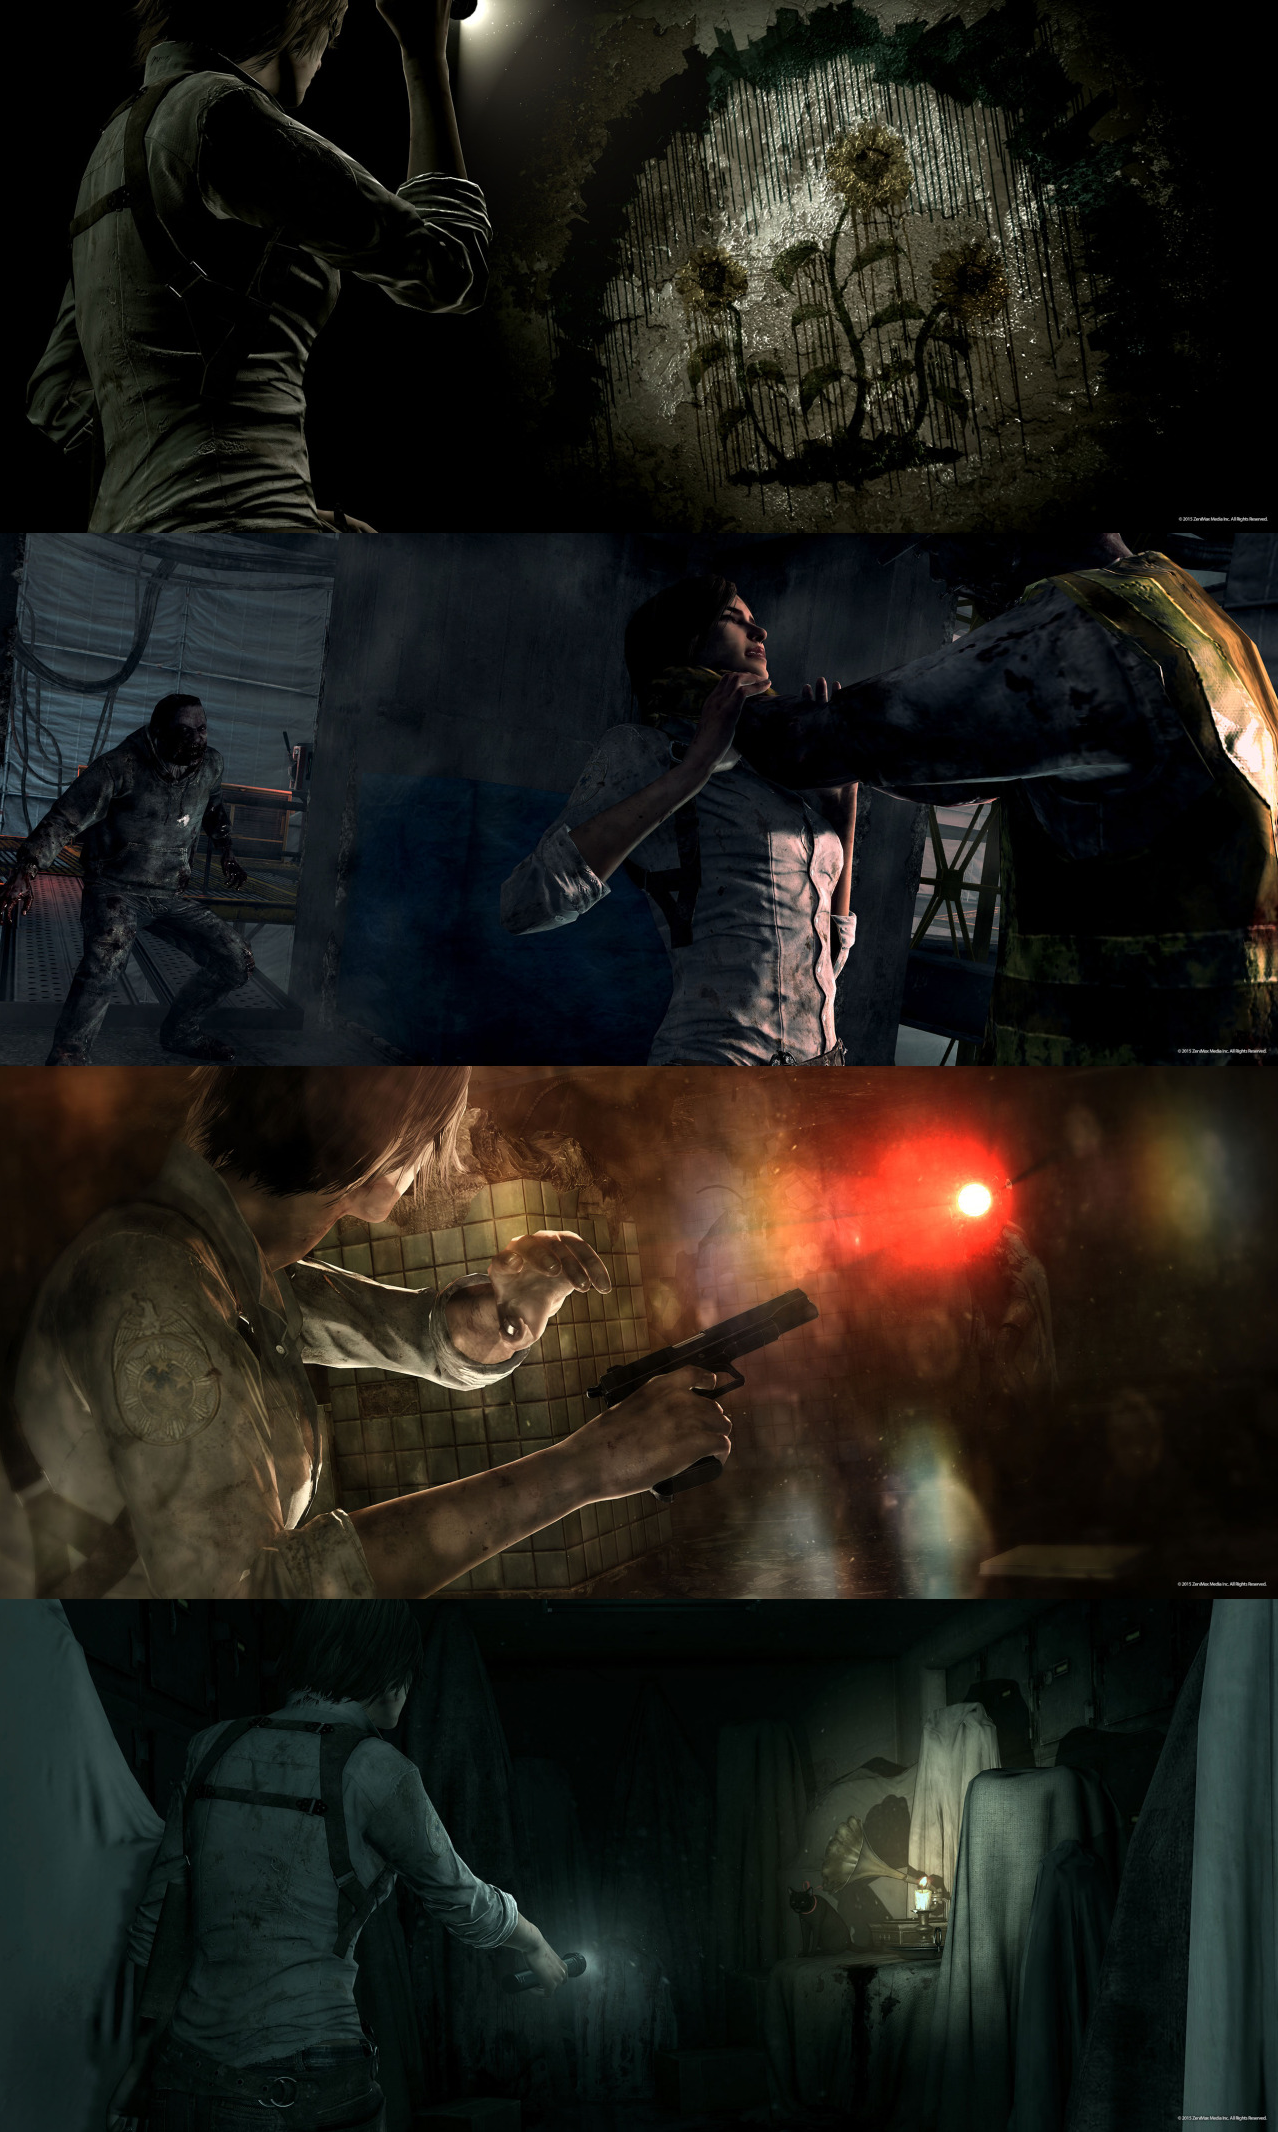 The evil within. The Consequence. The evil within, Evil